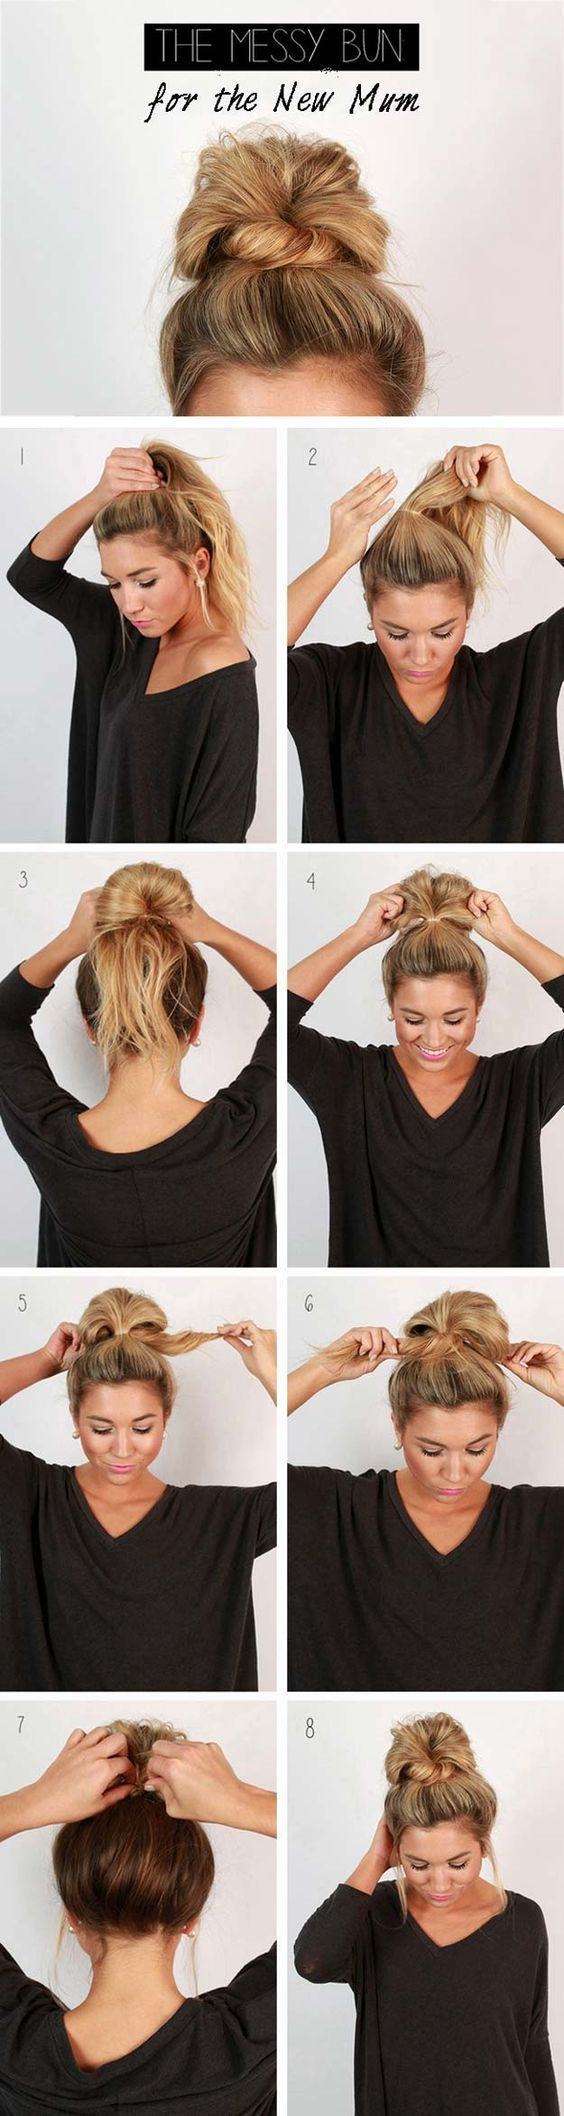 Incredible 1000 Ideas About Formal Bun On Pinterest Hairstyles With Short Hairstyles Gunalazisus